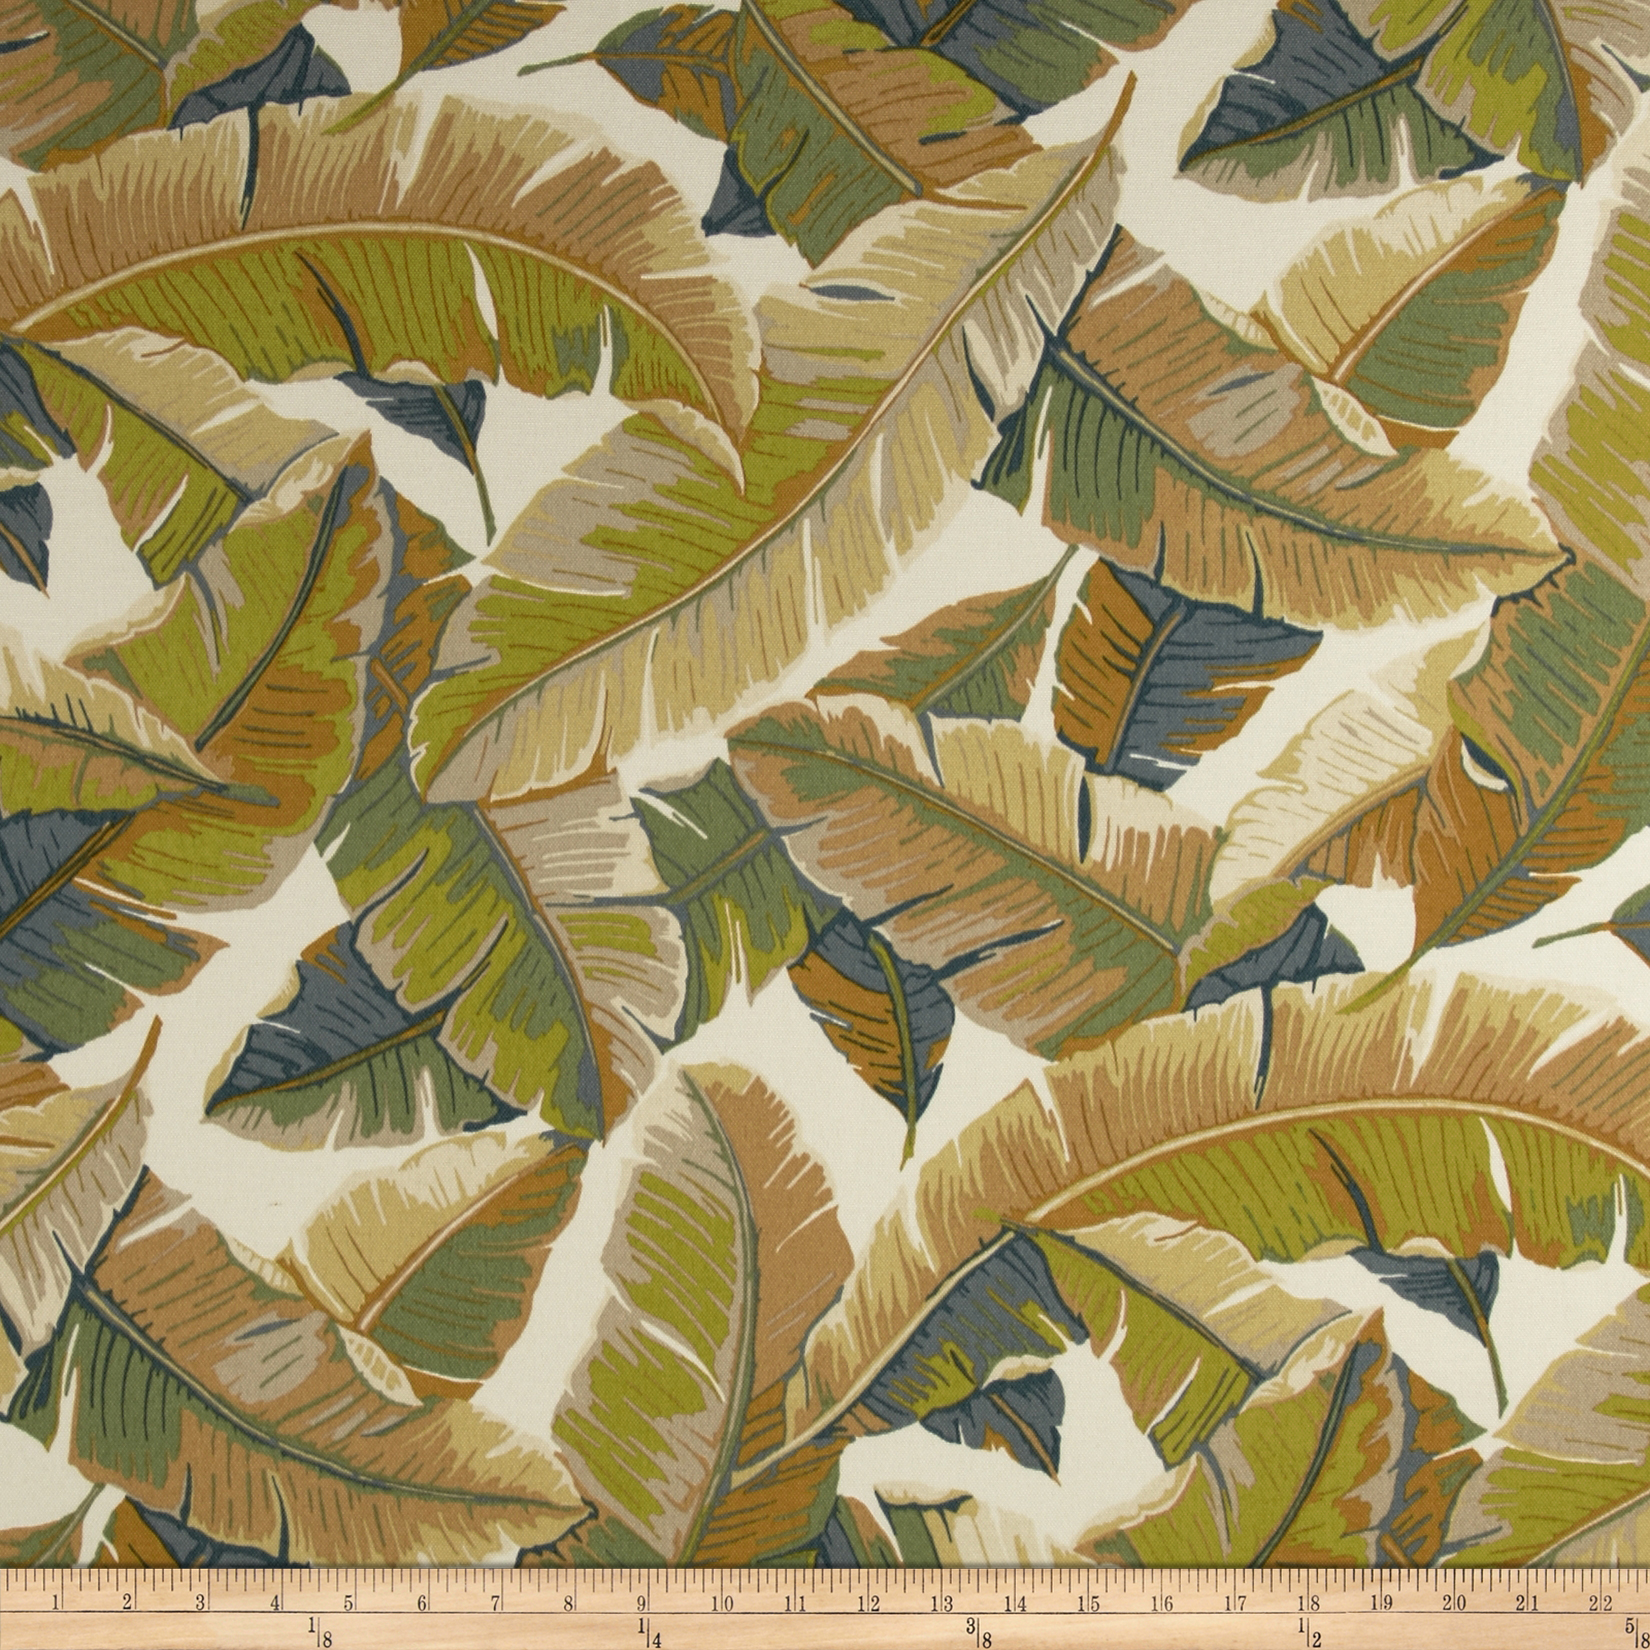 Richloom Solarium Outdoor Balmoral Seagrass Fabric By The Yard by Richloom in USA